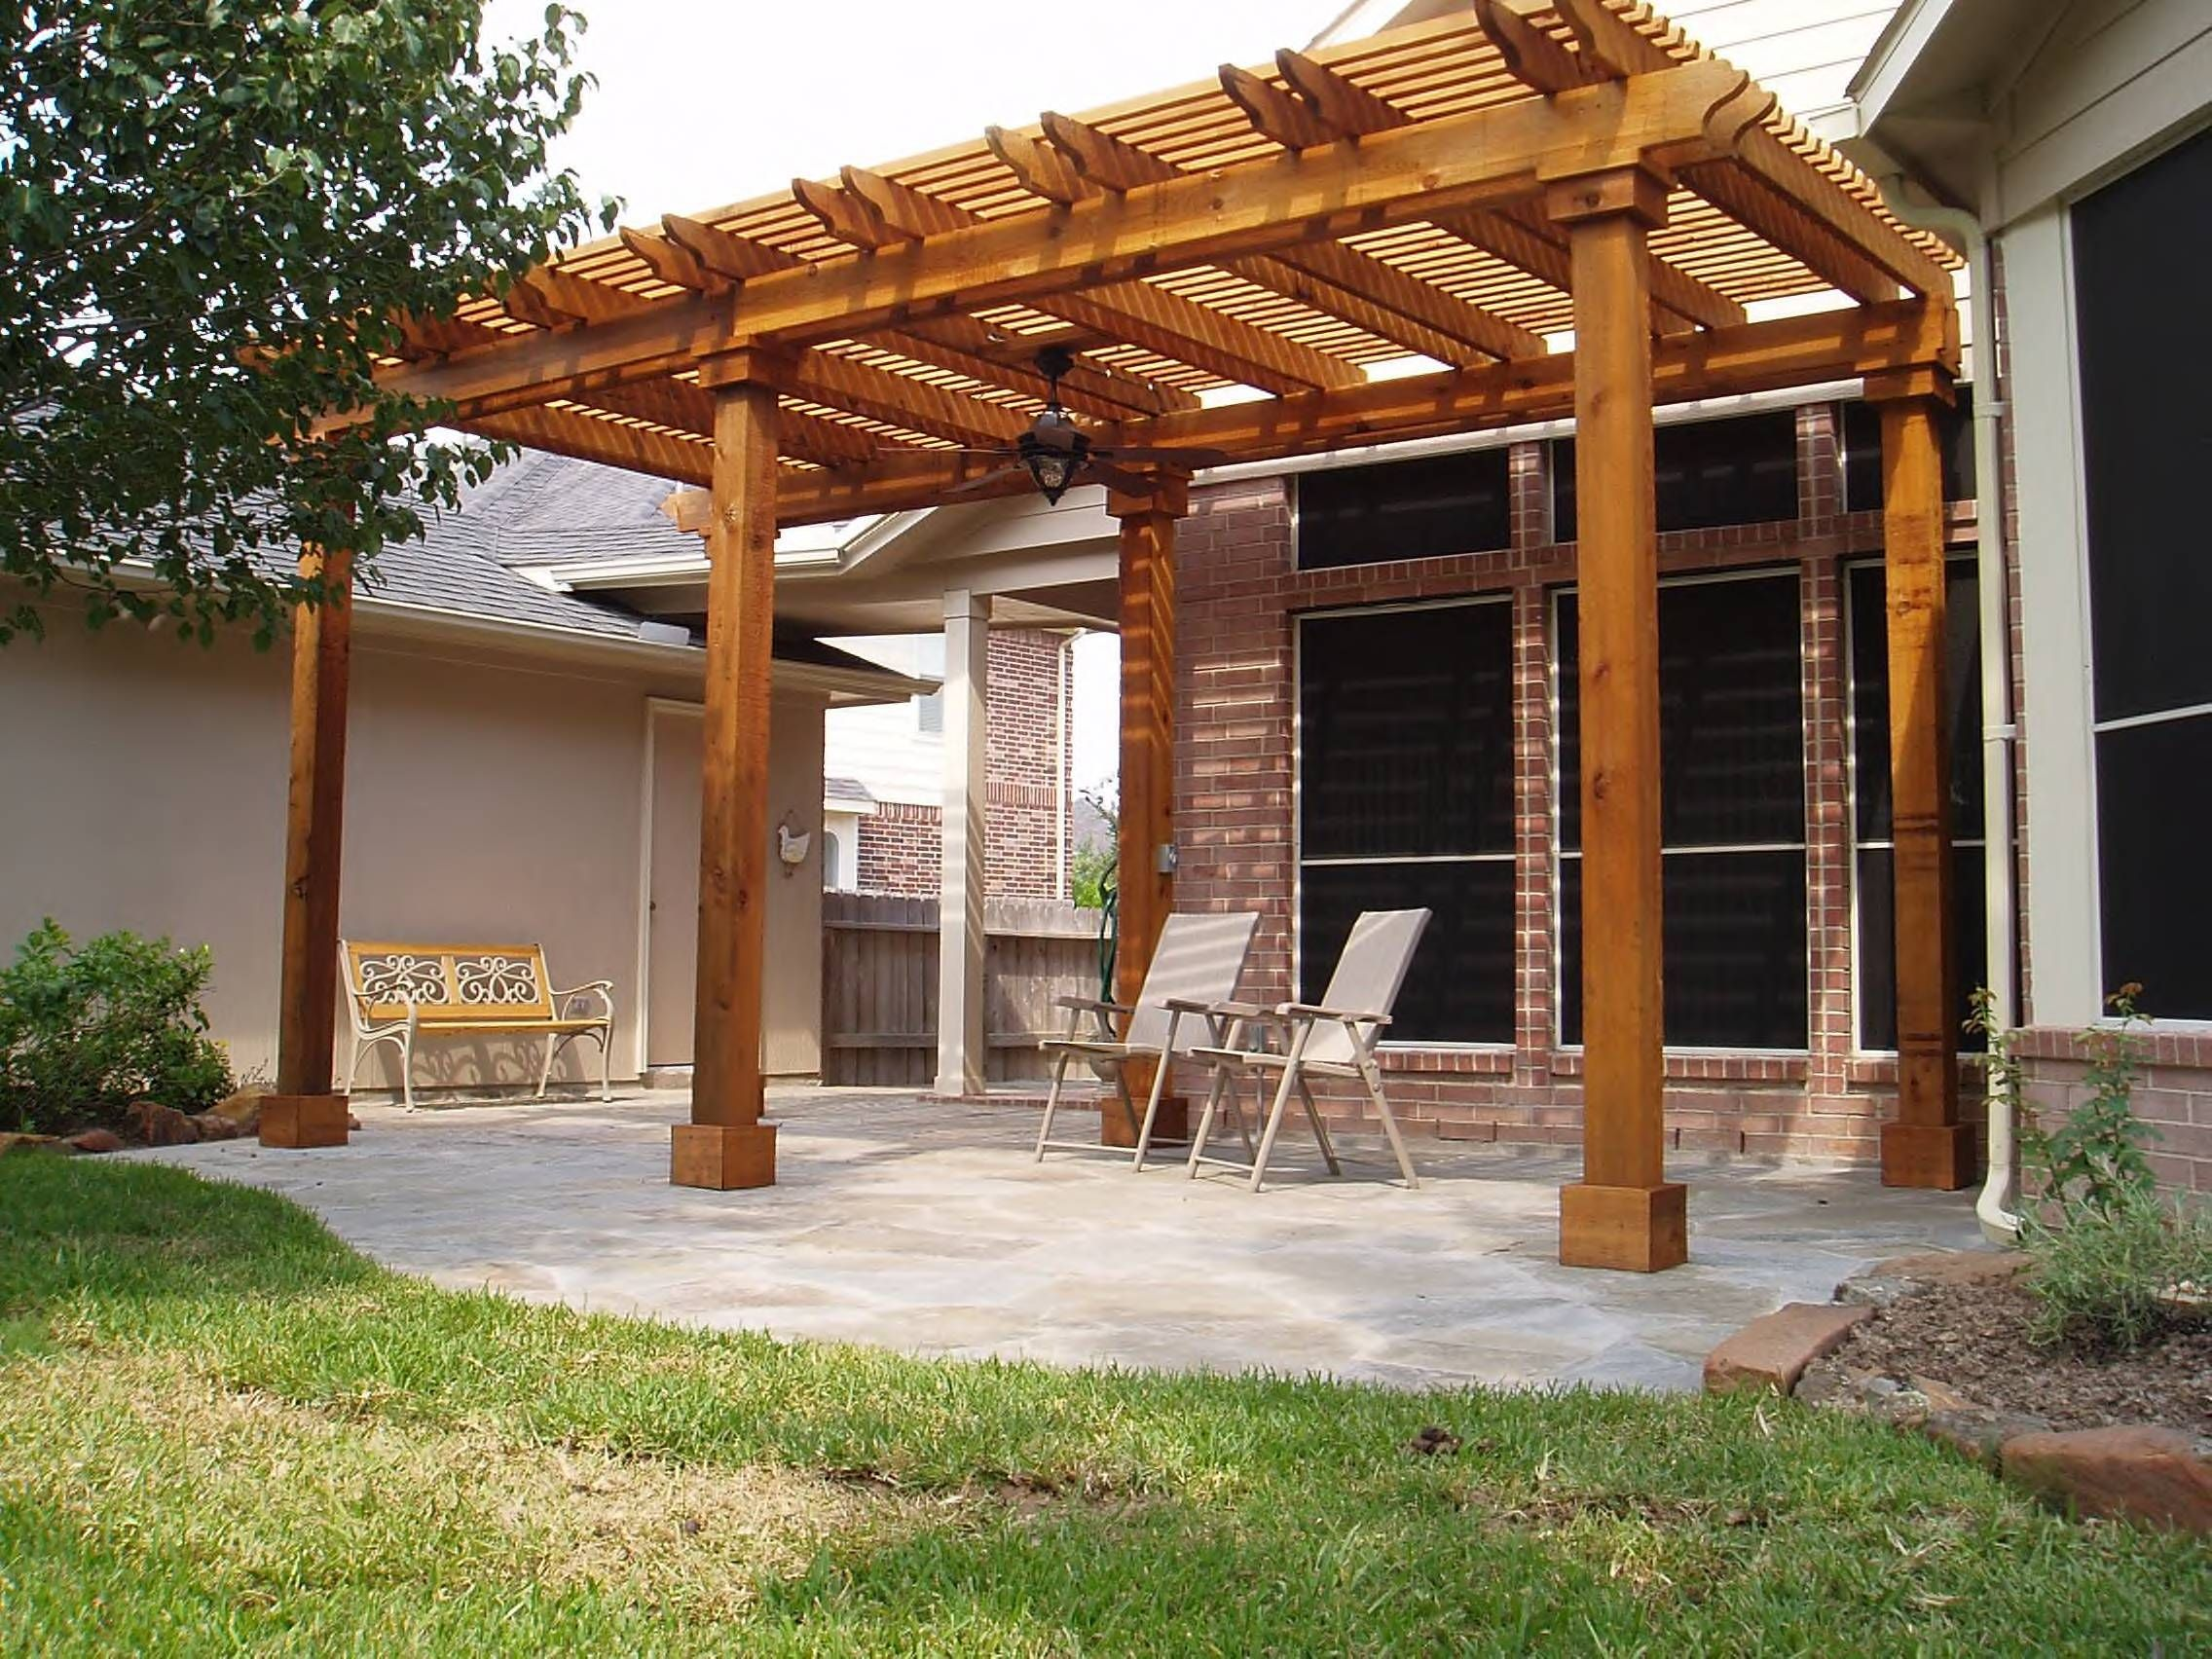 Image of: diy patio ideas on a budget | Deck ideas in 2018 ...